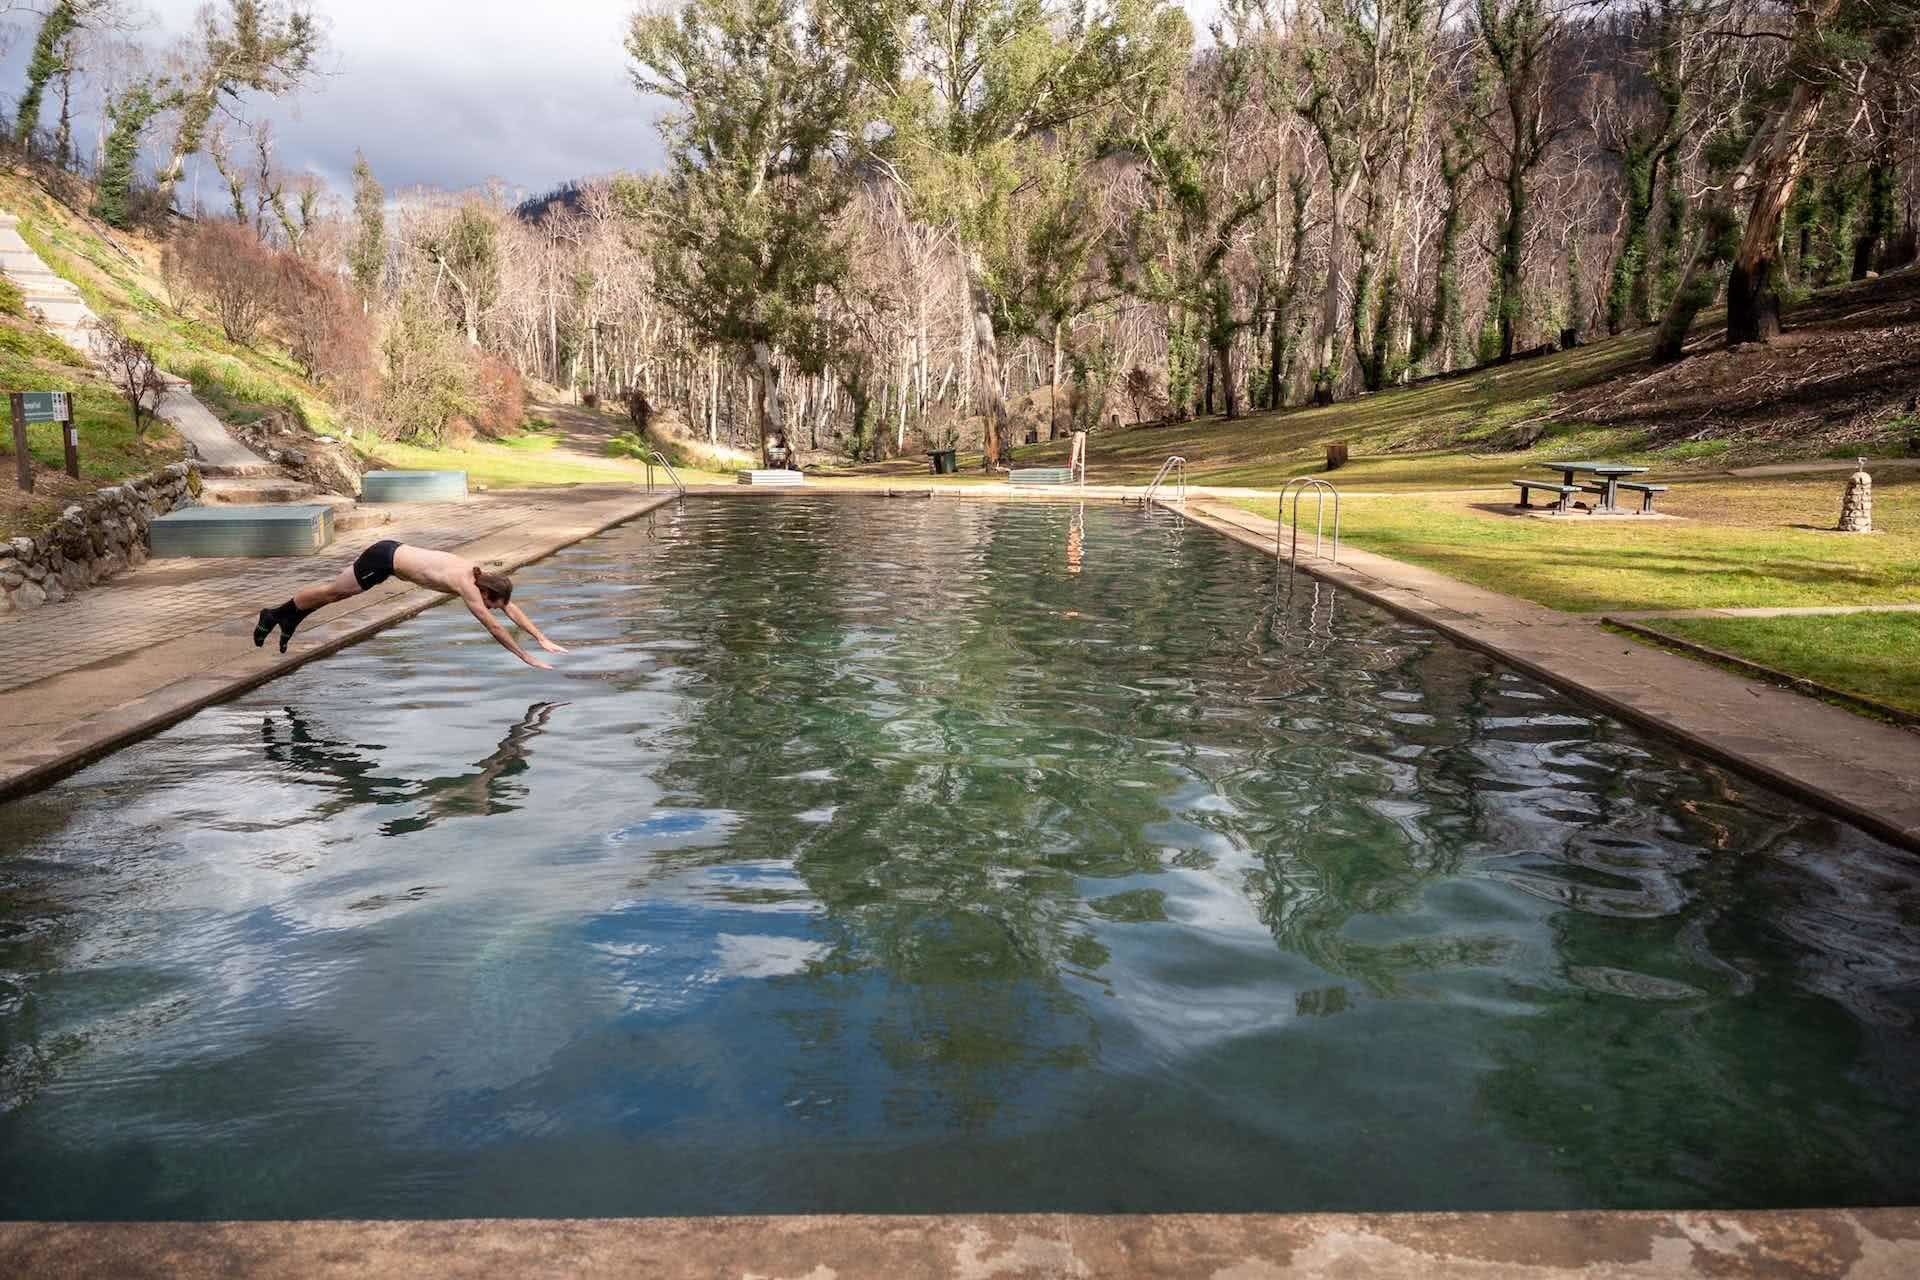 The Kiandra plains are a Winter Escape with Plenty to Offer by Mattie Gould, photo by Jon Harris, thermal pools, swimming